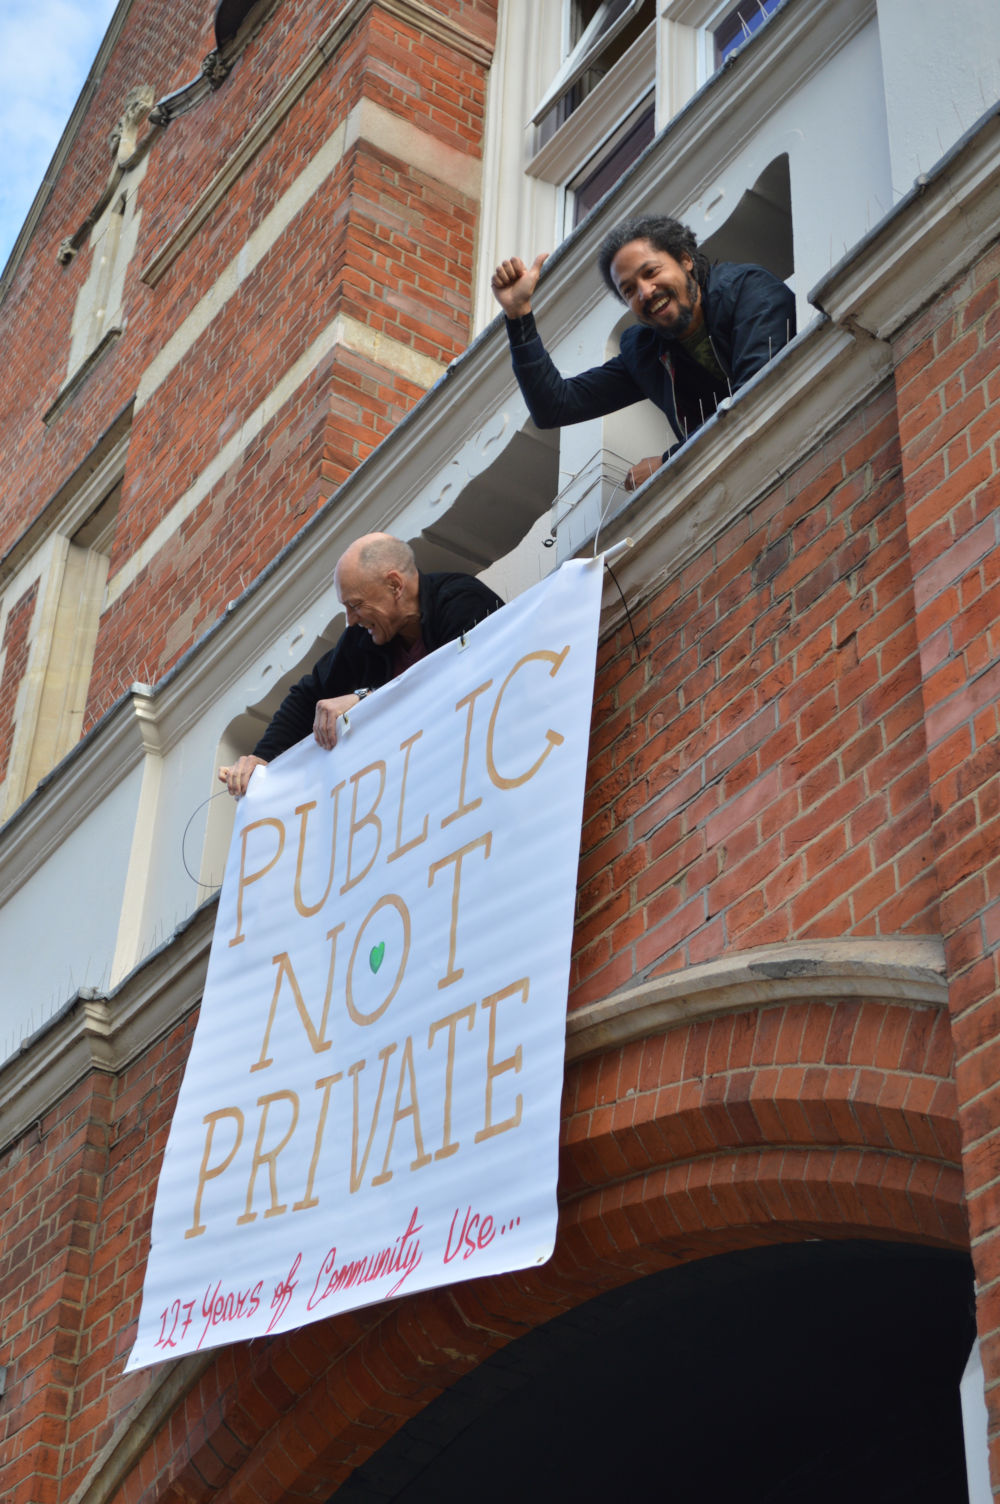 north-kensington-library-relaunch-public-not-private.jpg